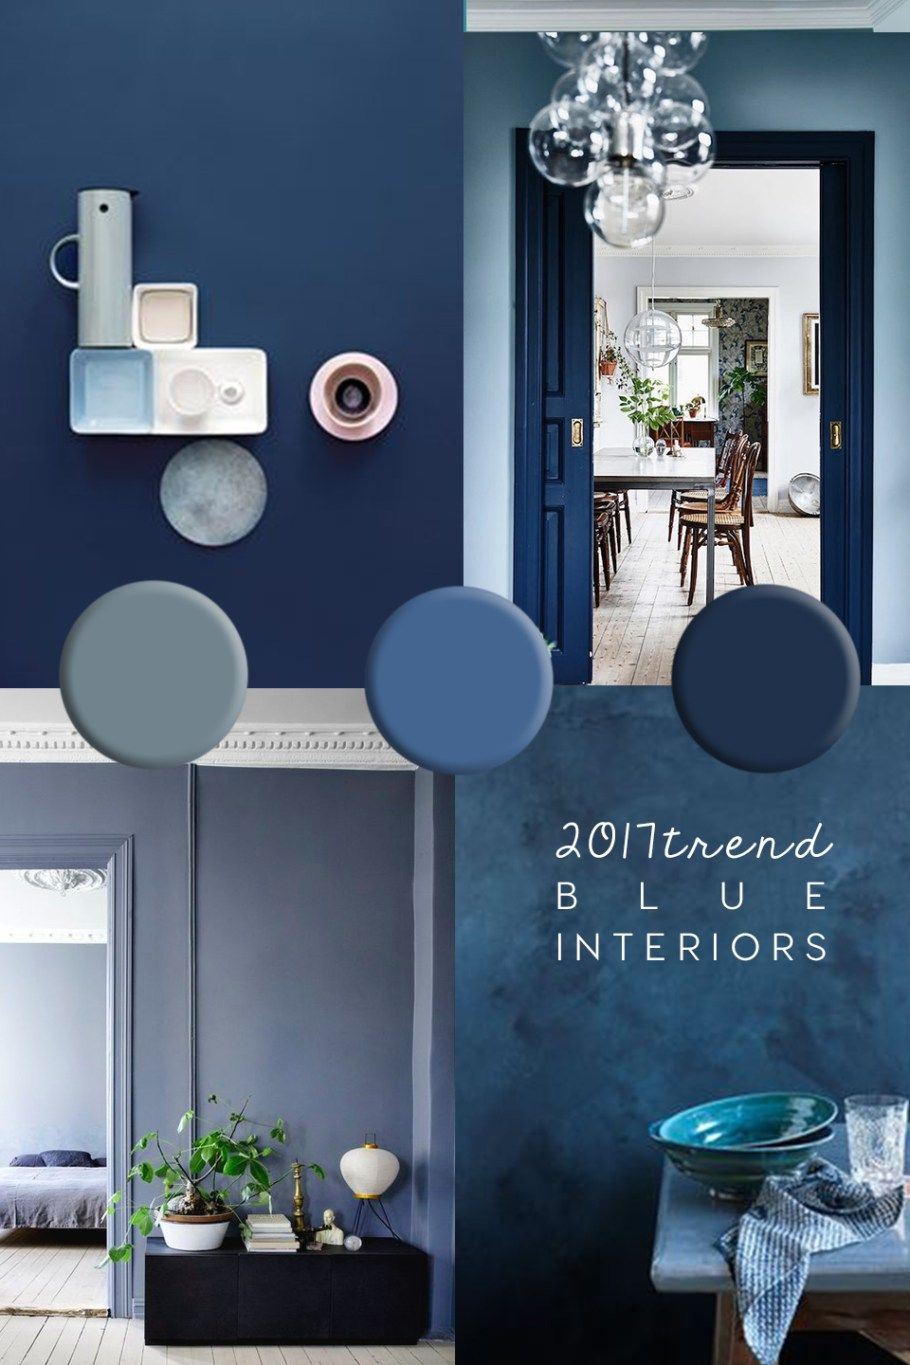 Blue interior trend Interiors Blog and Room